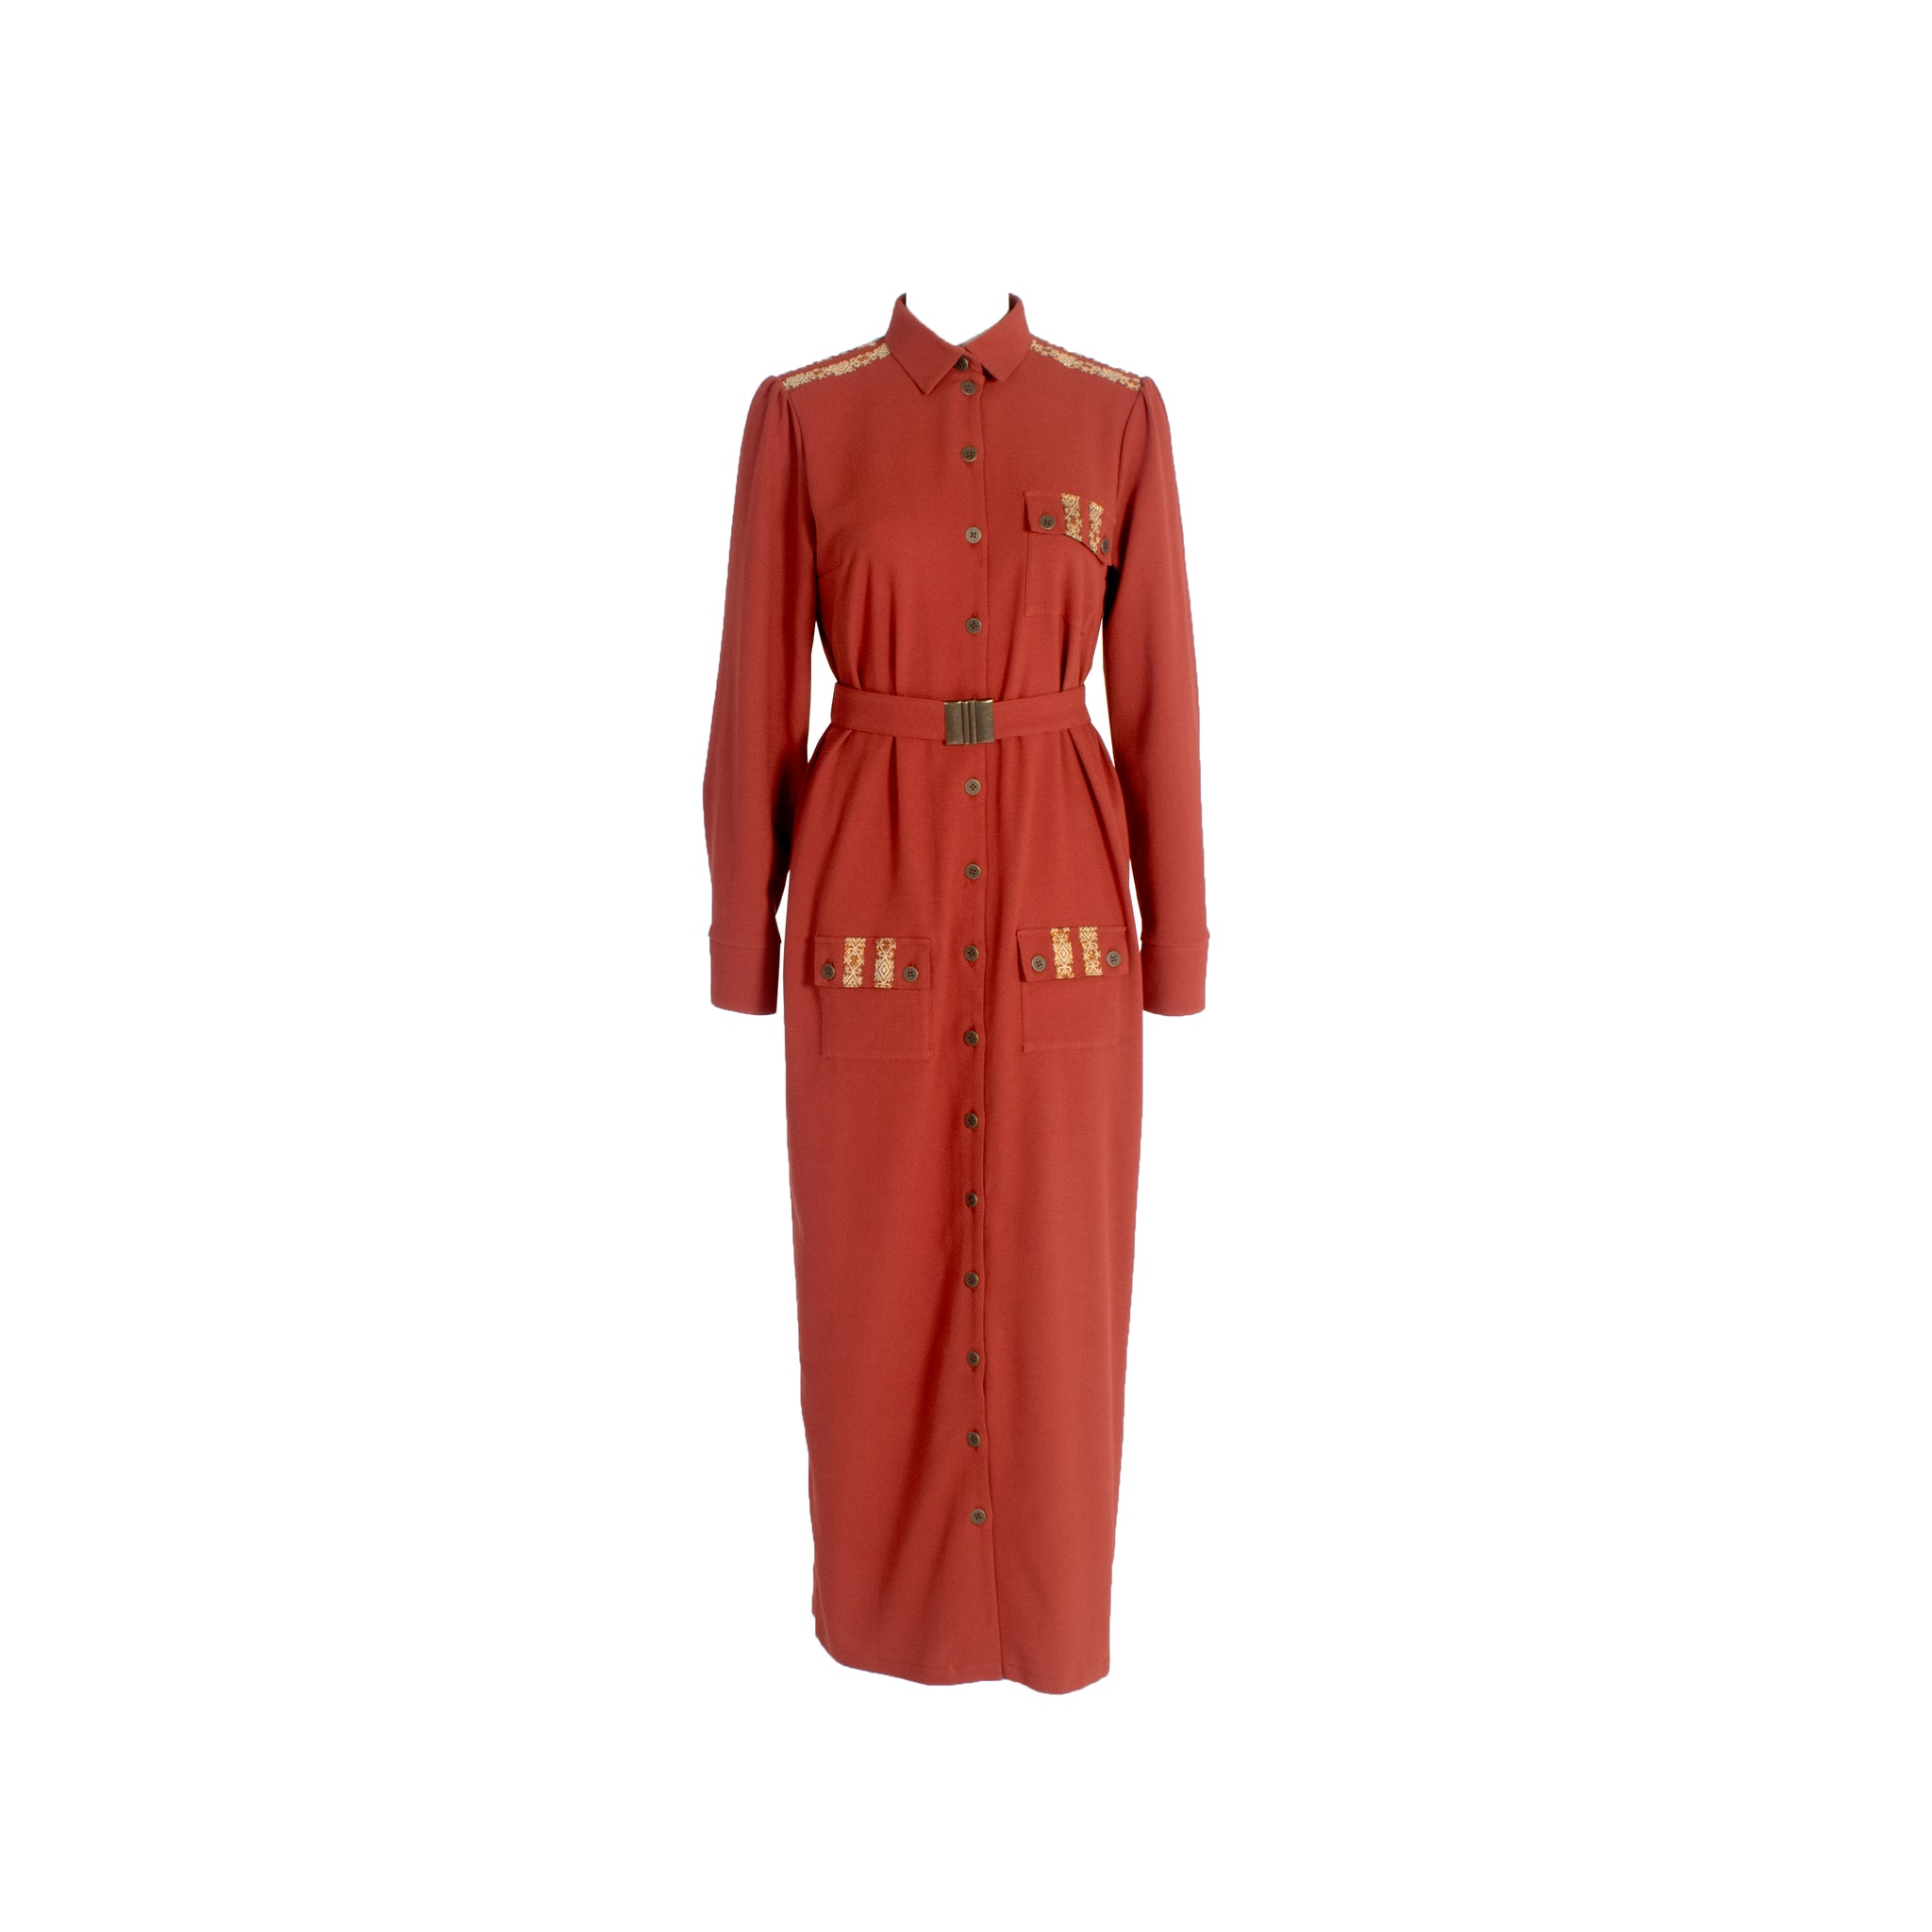 Long Sleeve Wool Button Up Shirt Dress with Chest Pockets Burgundy